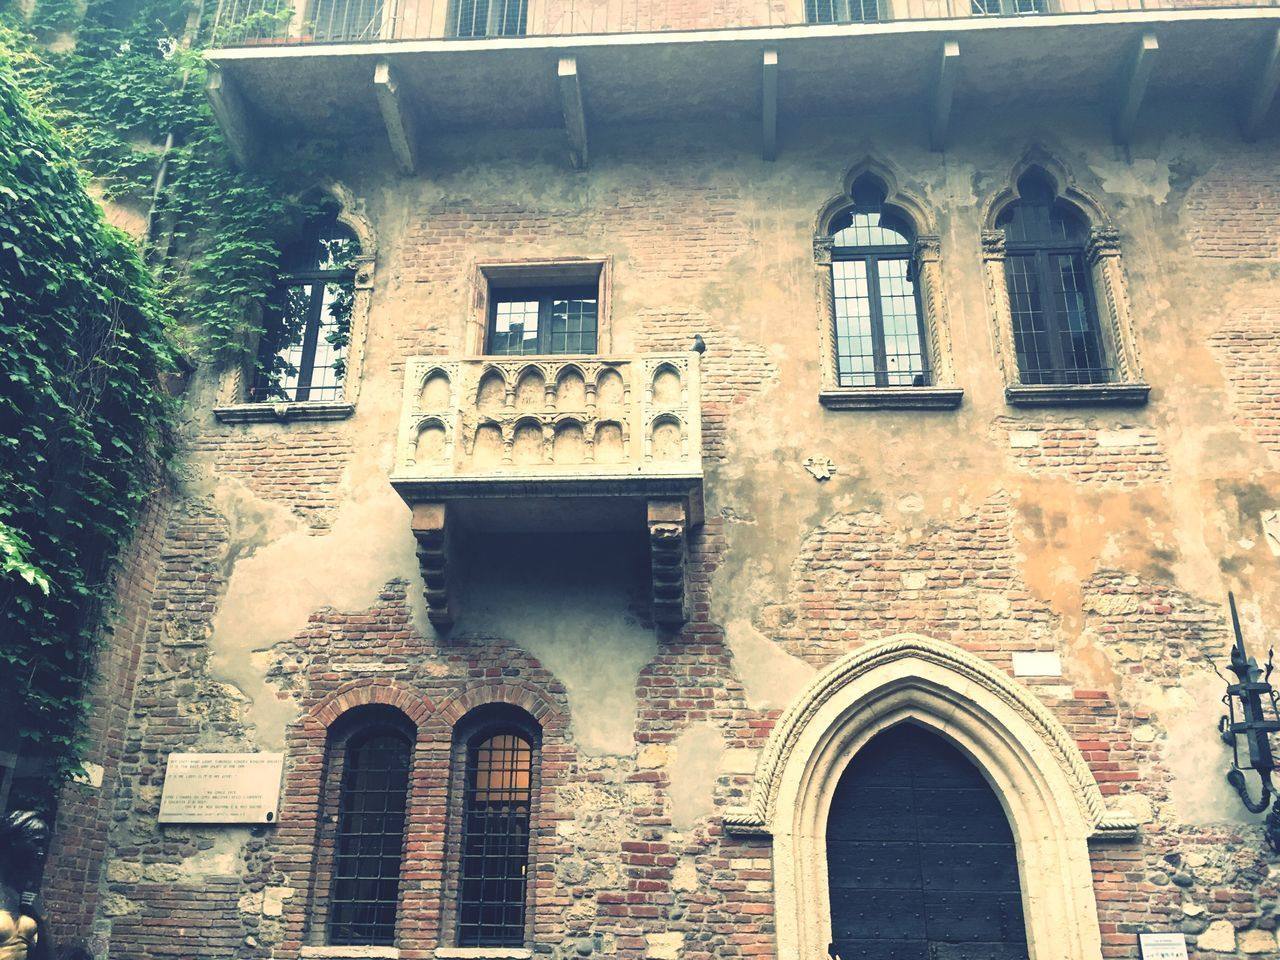 Architecture Built Structure Building Exterior Arch Window No People Low Angle View Day Outdoors Romeo And Juliet Juliet Balcony Verona Italy Love Shakespeare EyeEm Best Shots Eye4photography  EyeEmBestPics Eyeem Market Travel Destinations Traveling Travel Photography Trip